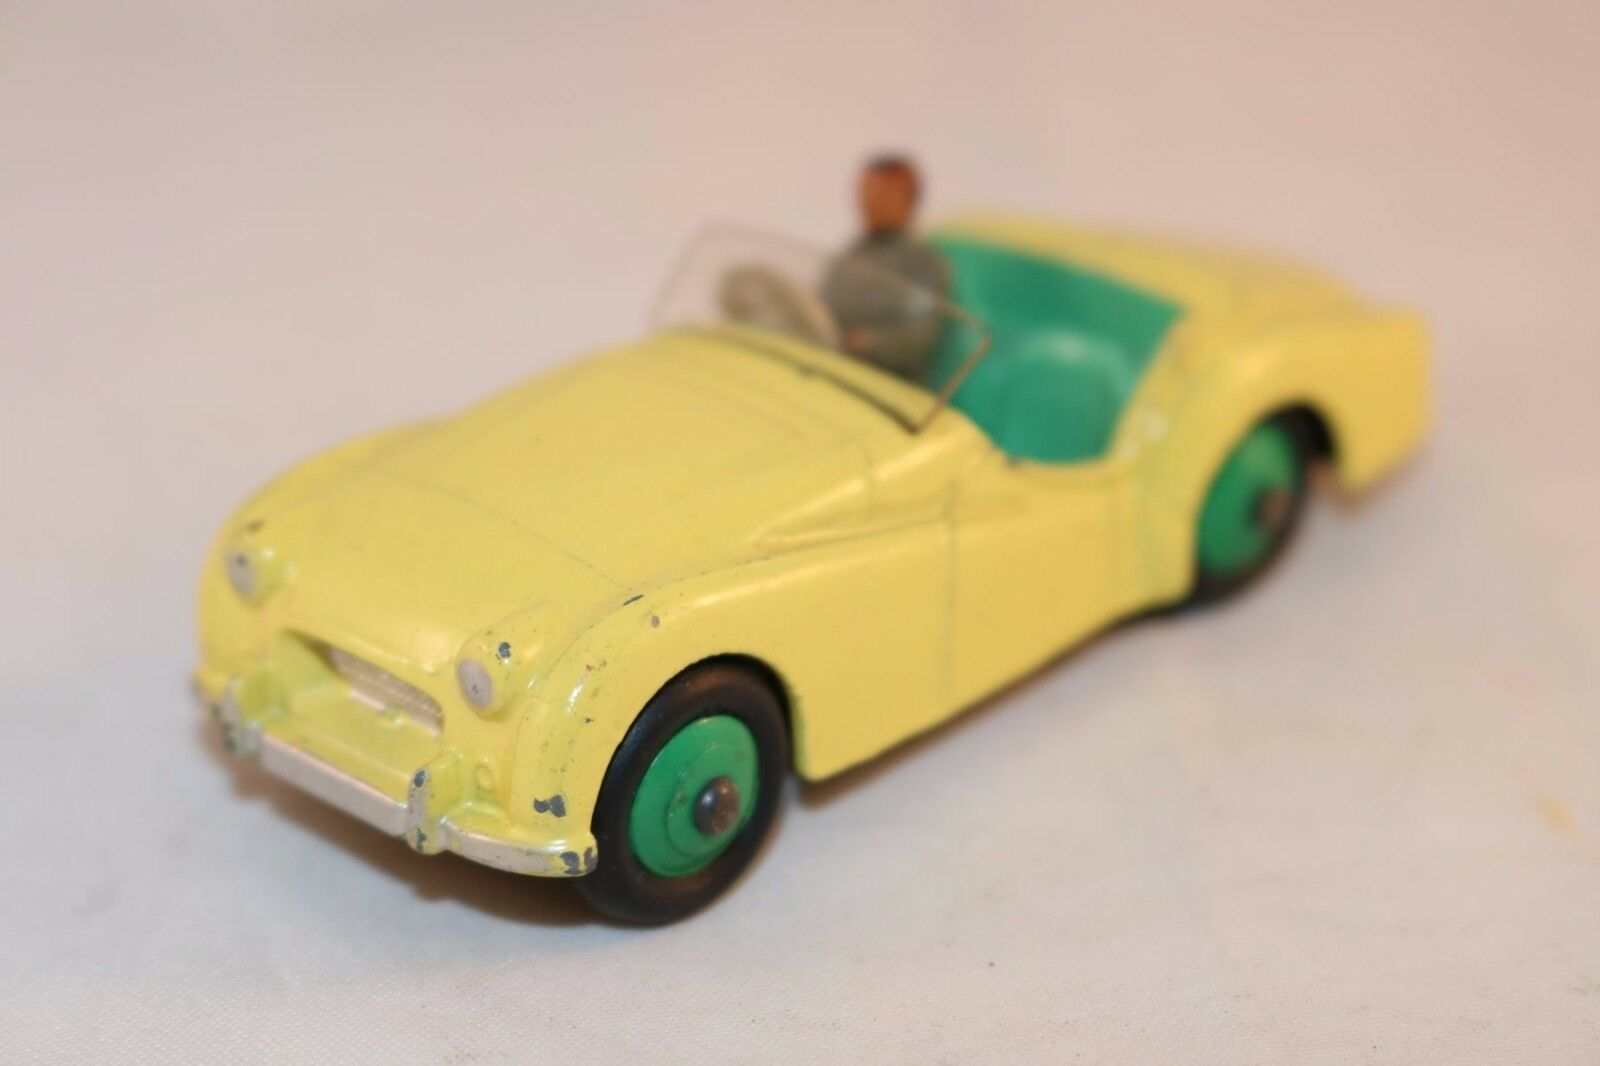 Dinky Toys 105 Triumph Tr 2 jaune in near mint all original condition